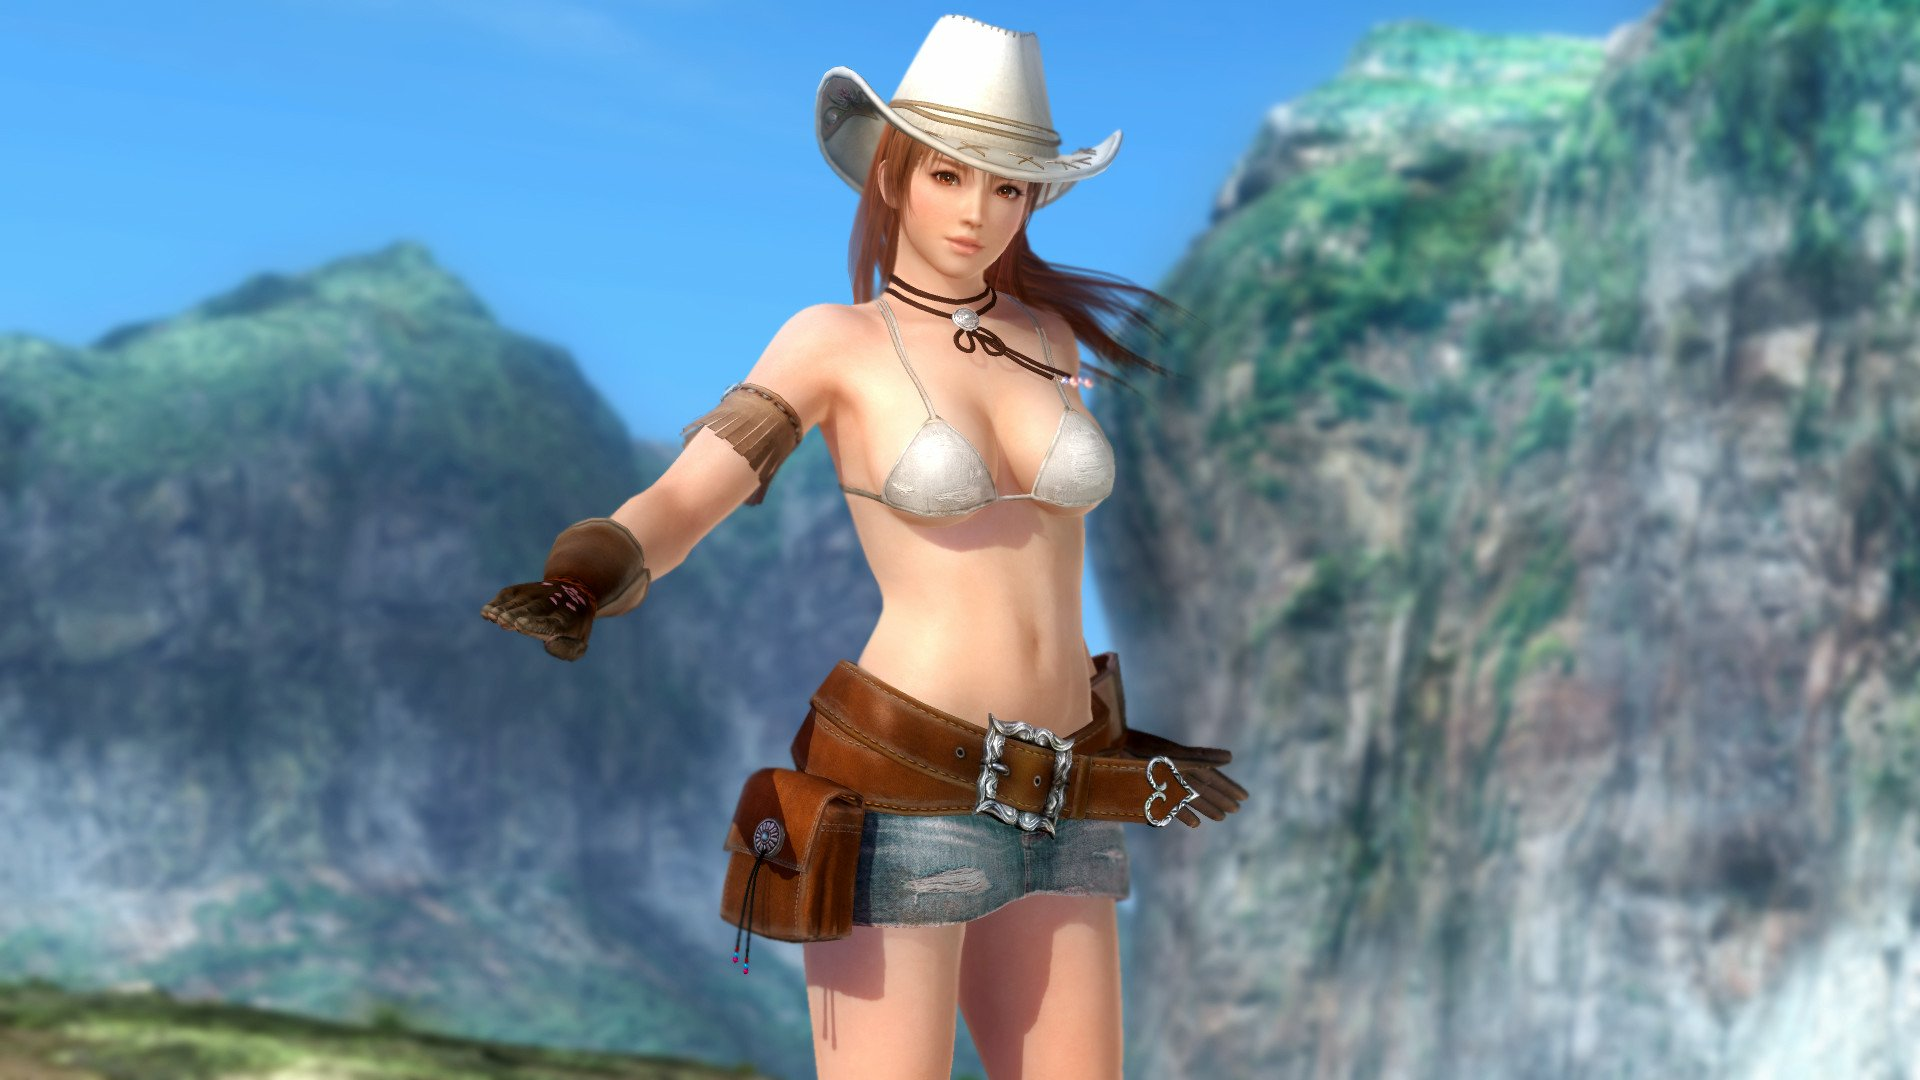 dead or alive 5 cowgirl outfits are its next big trend - rice